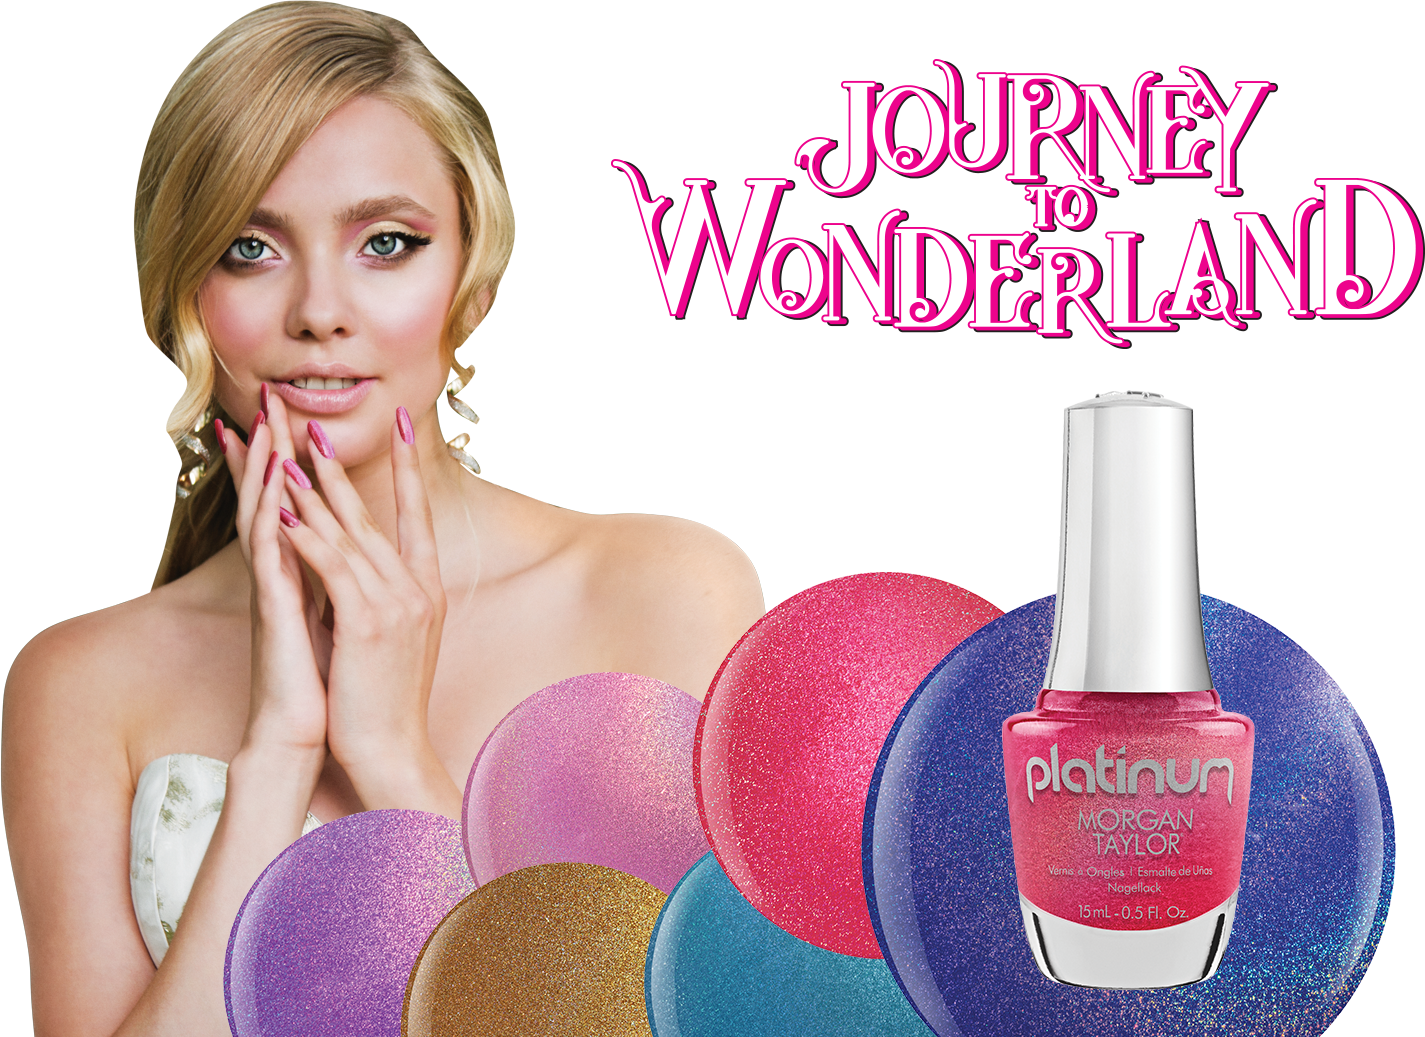 Journey to Wonderland